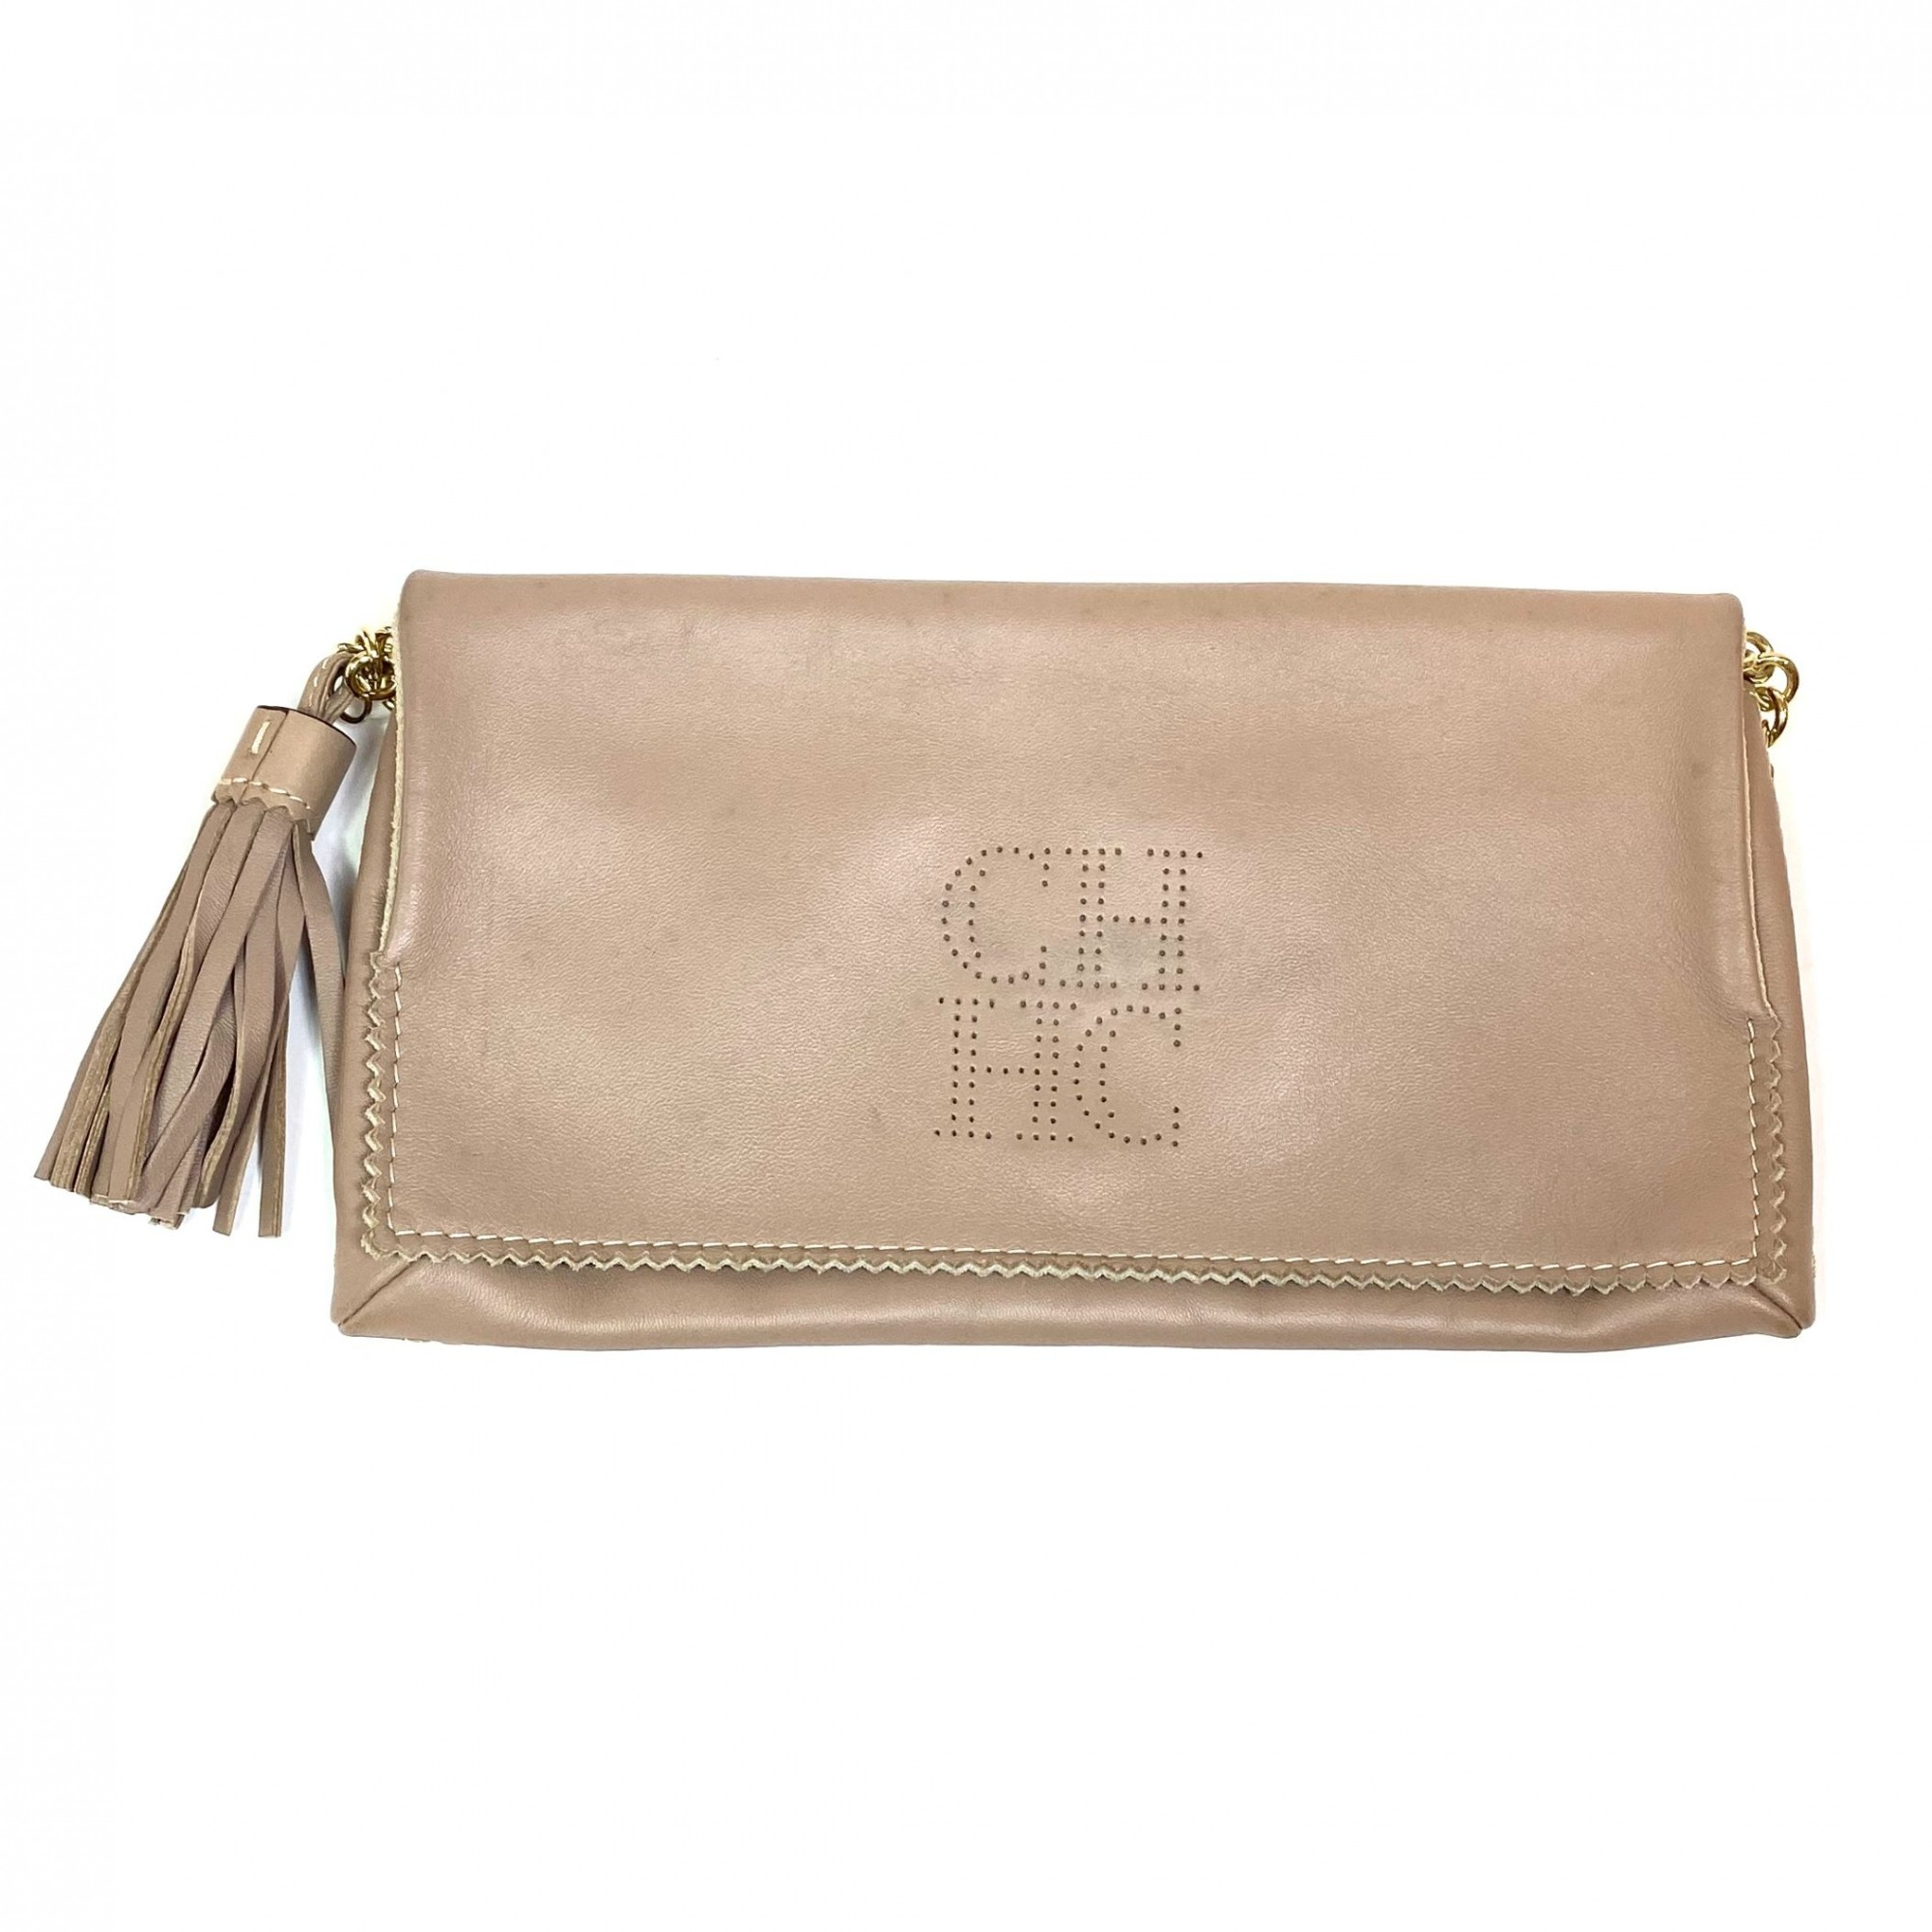 Bolsa Carolina Herrera Crossbody Nude